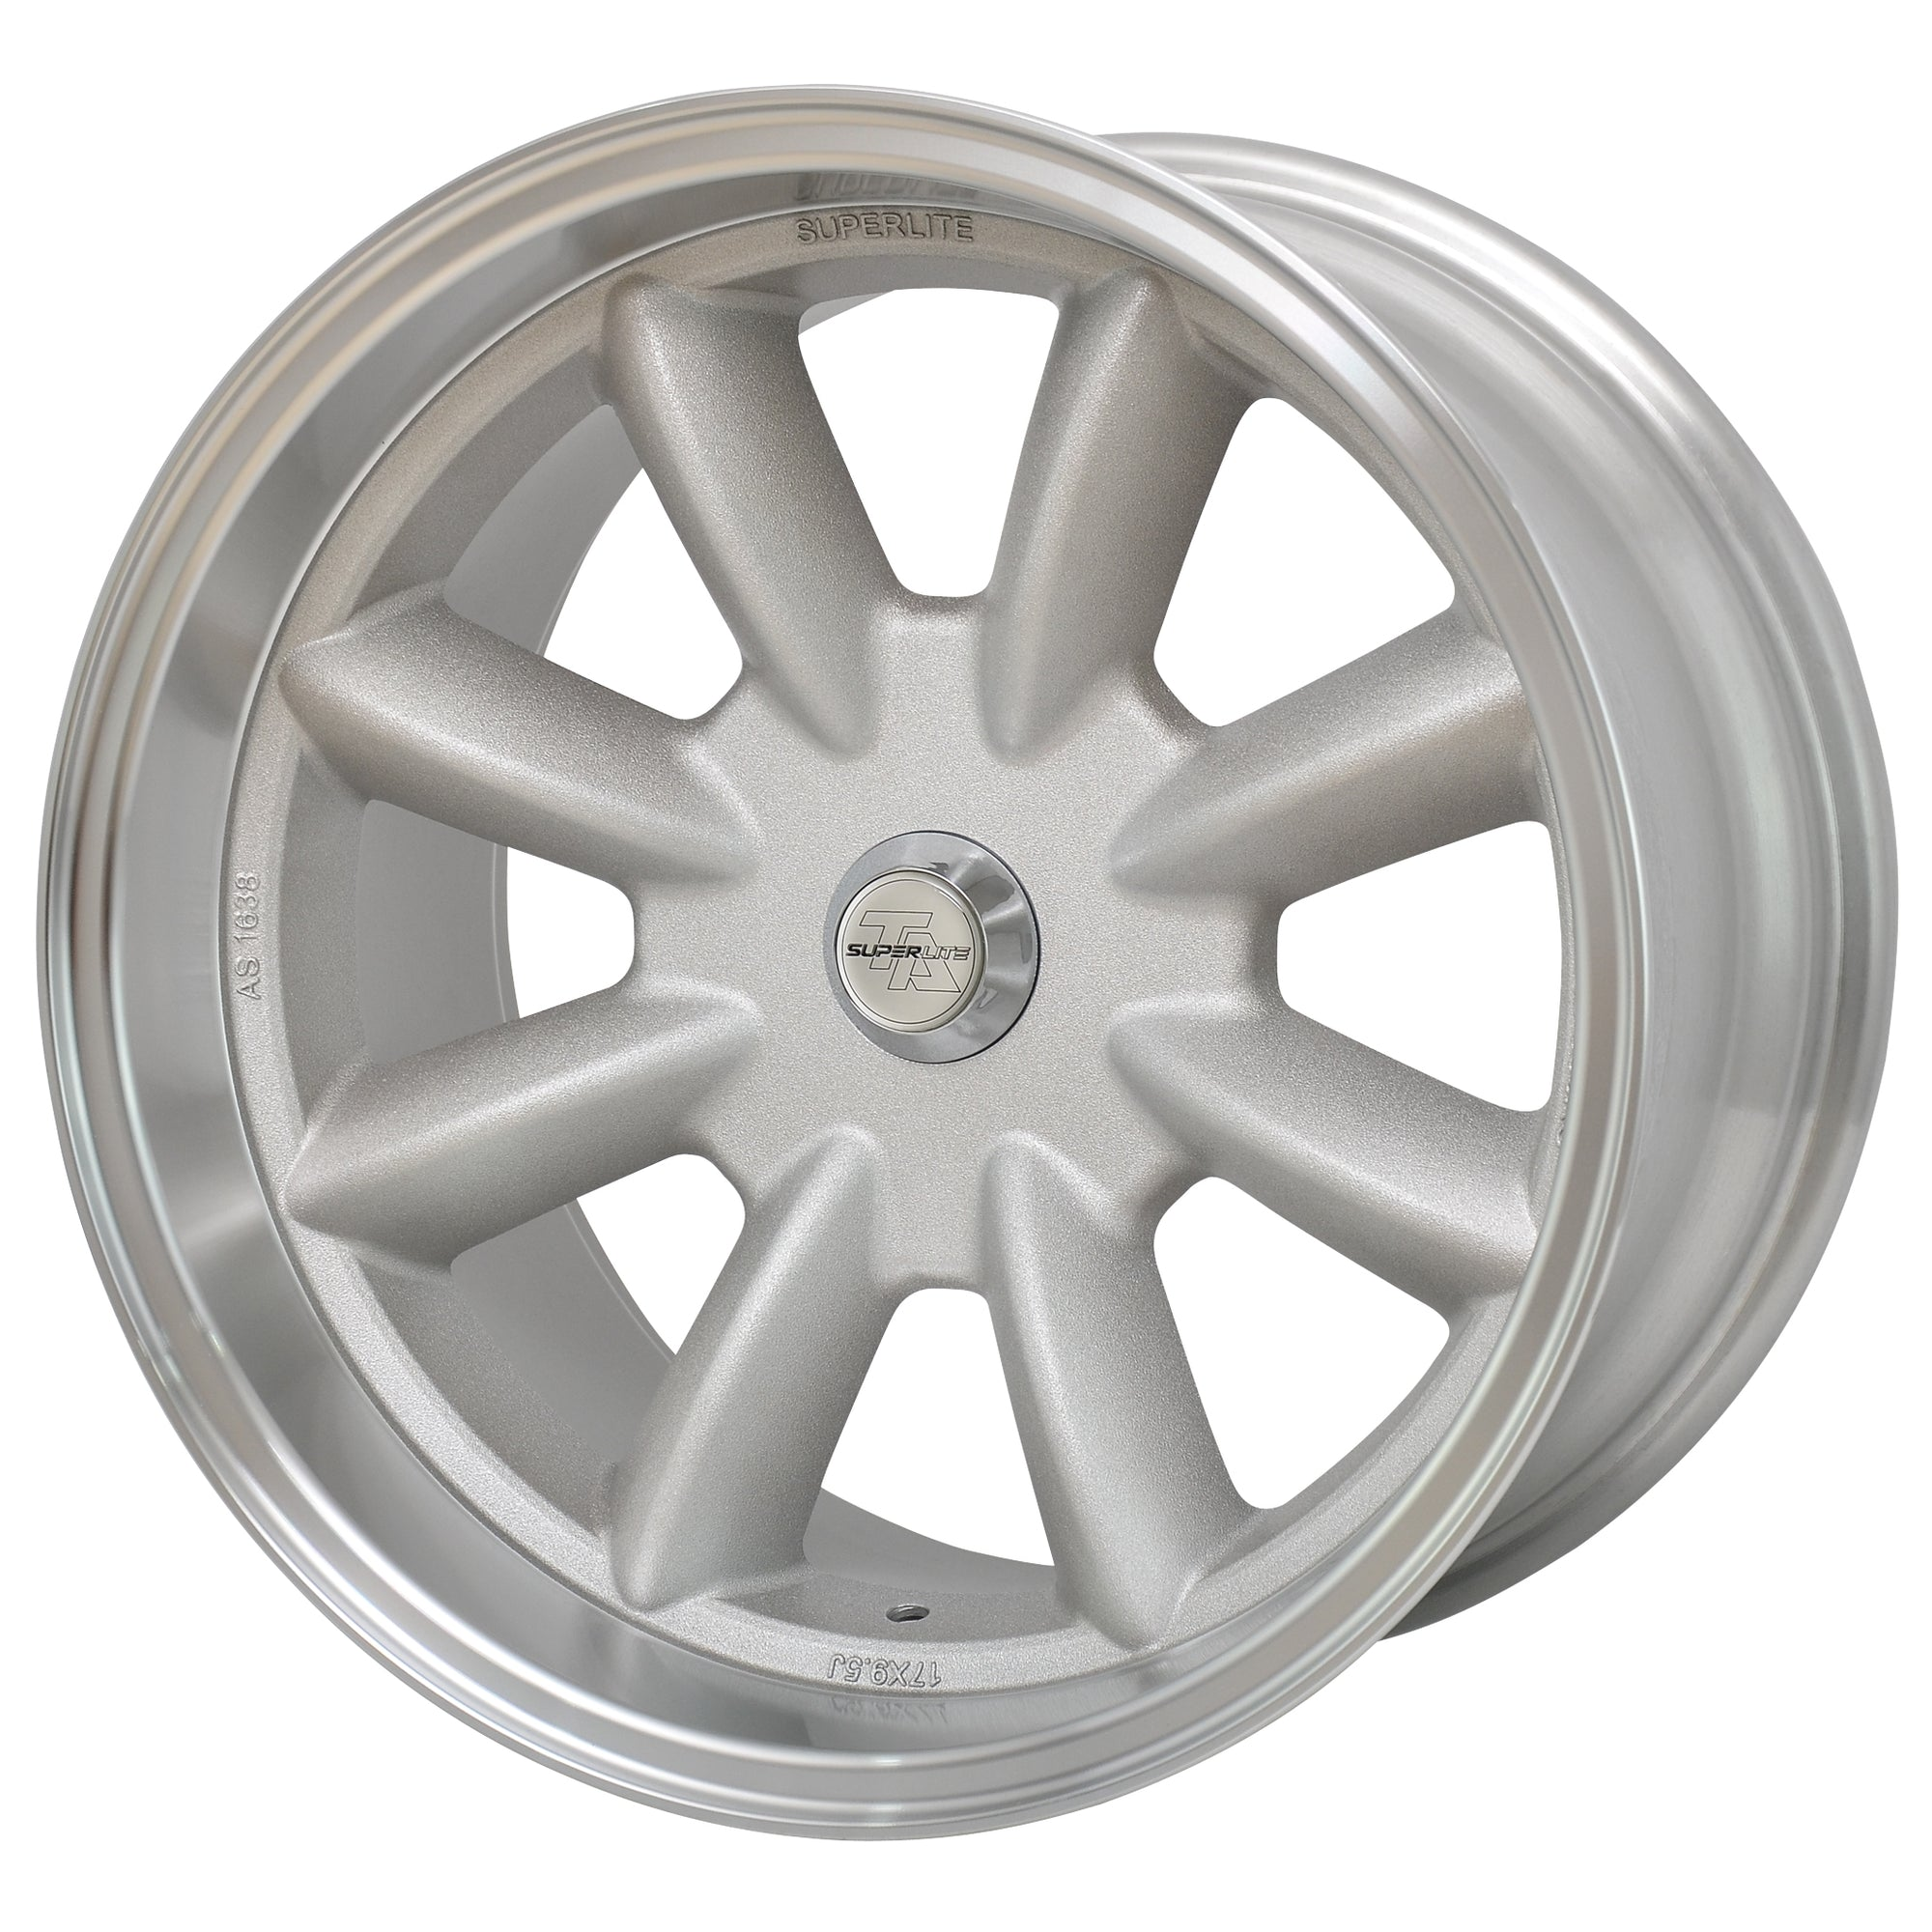 "Superlite 17x9.5 5x114.3 5.5"" Backspacing 73mm Centre Bore SPL1795155"